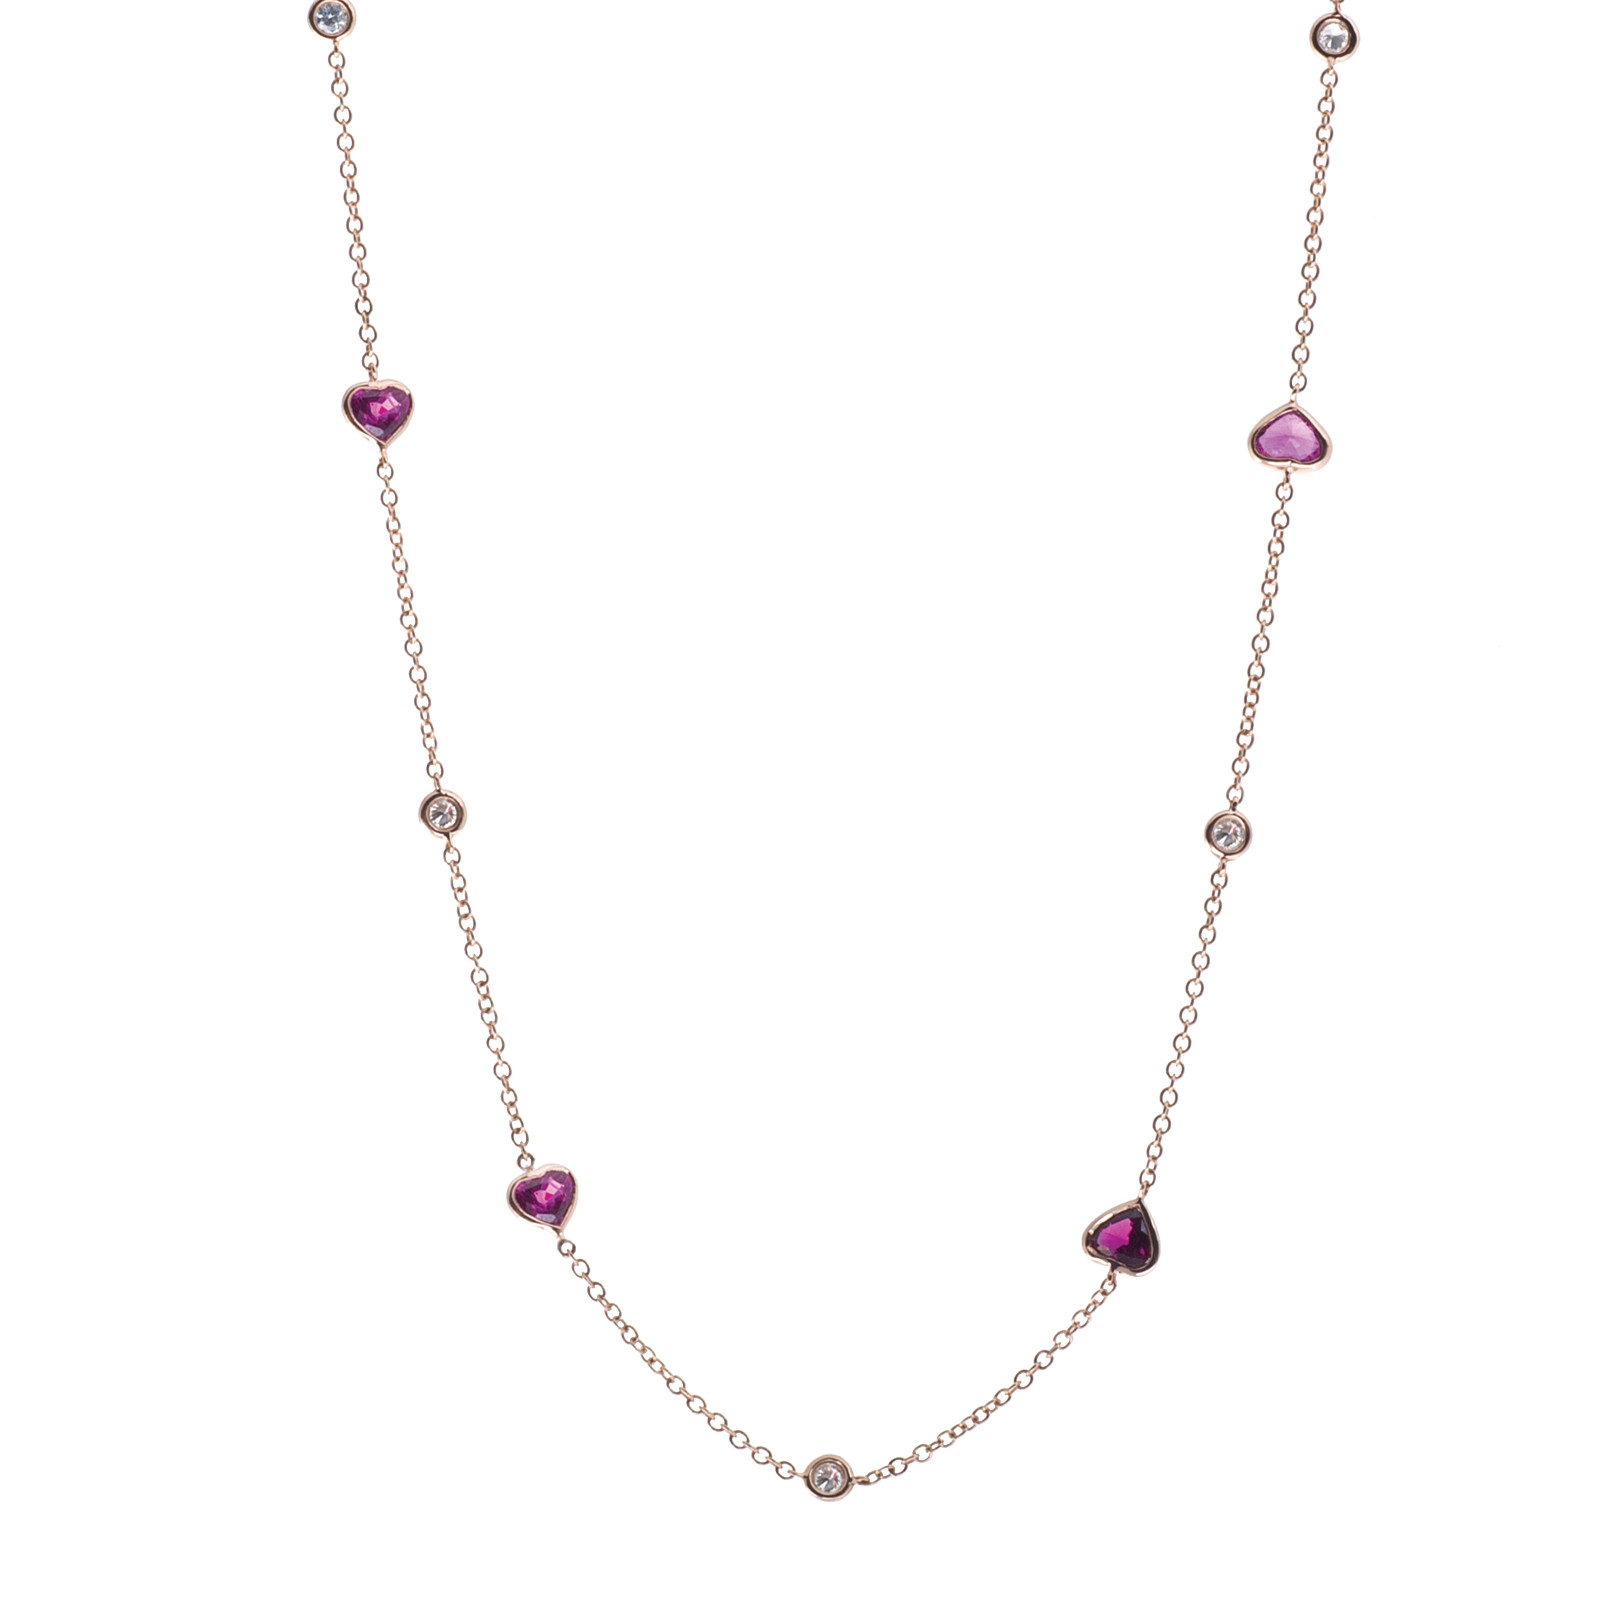 5.31 CTW Ruby & Diamond Necklace